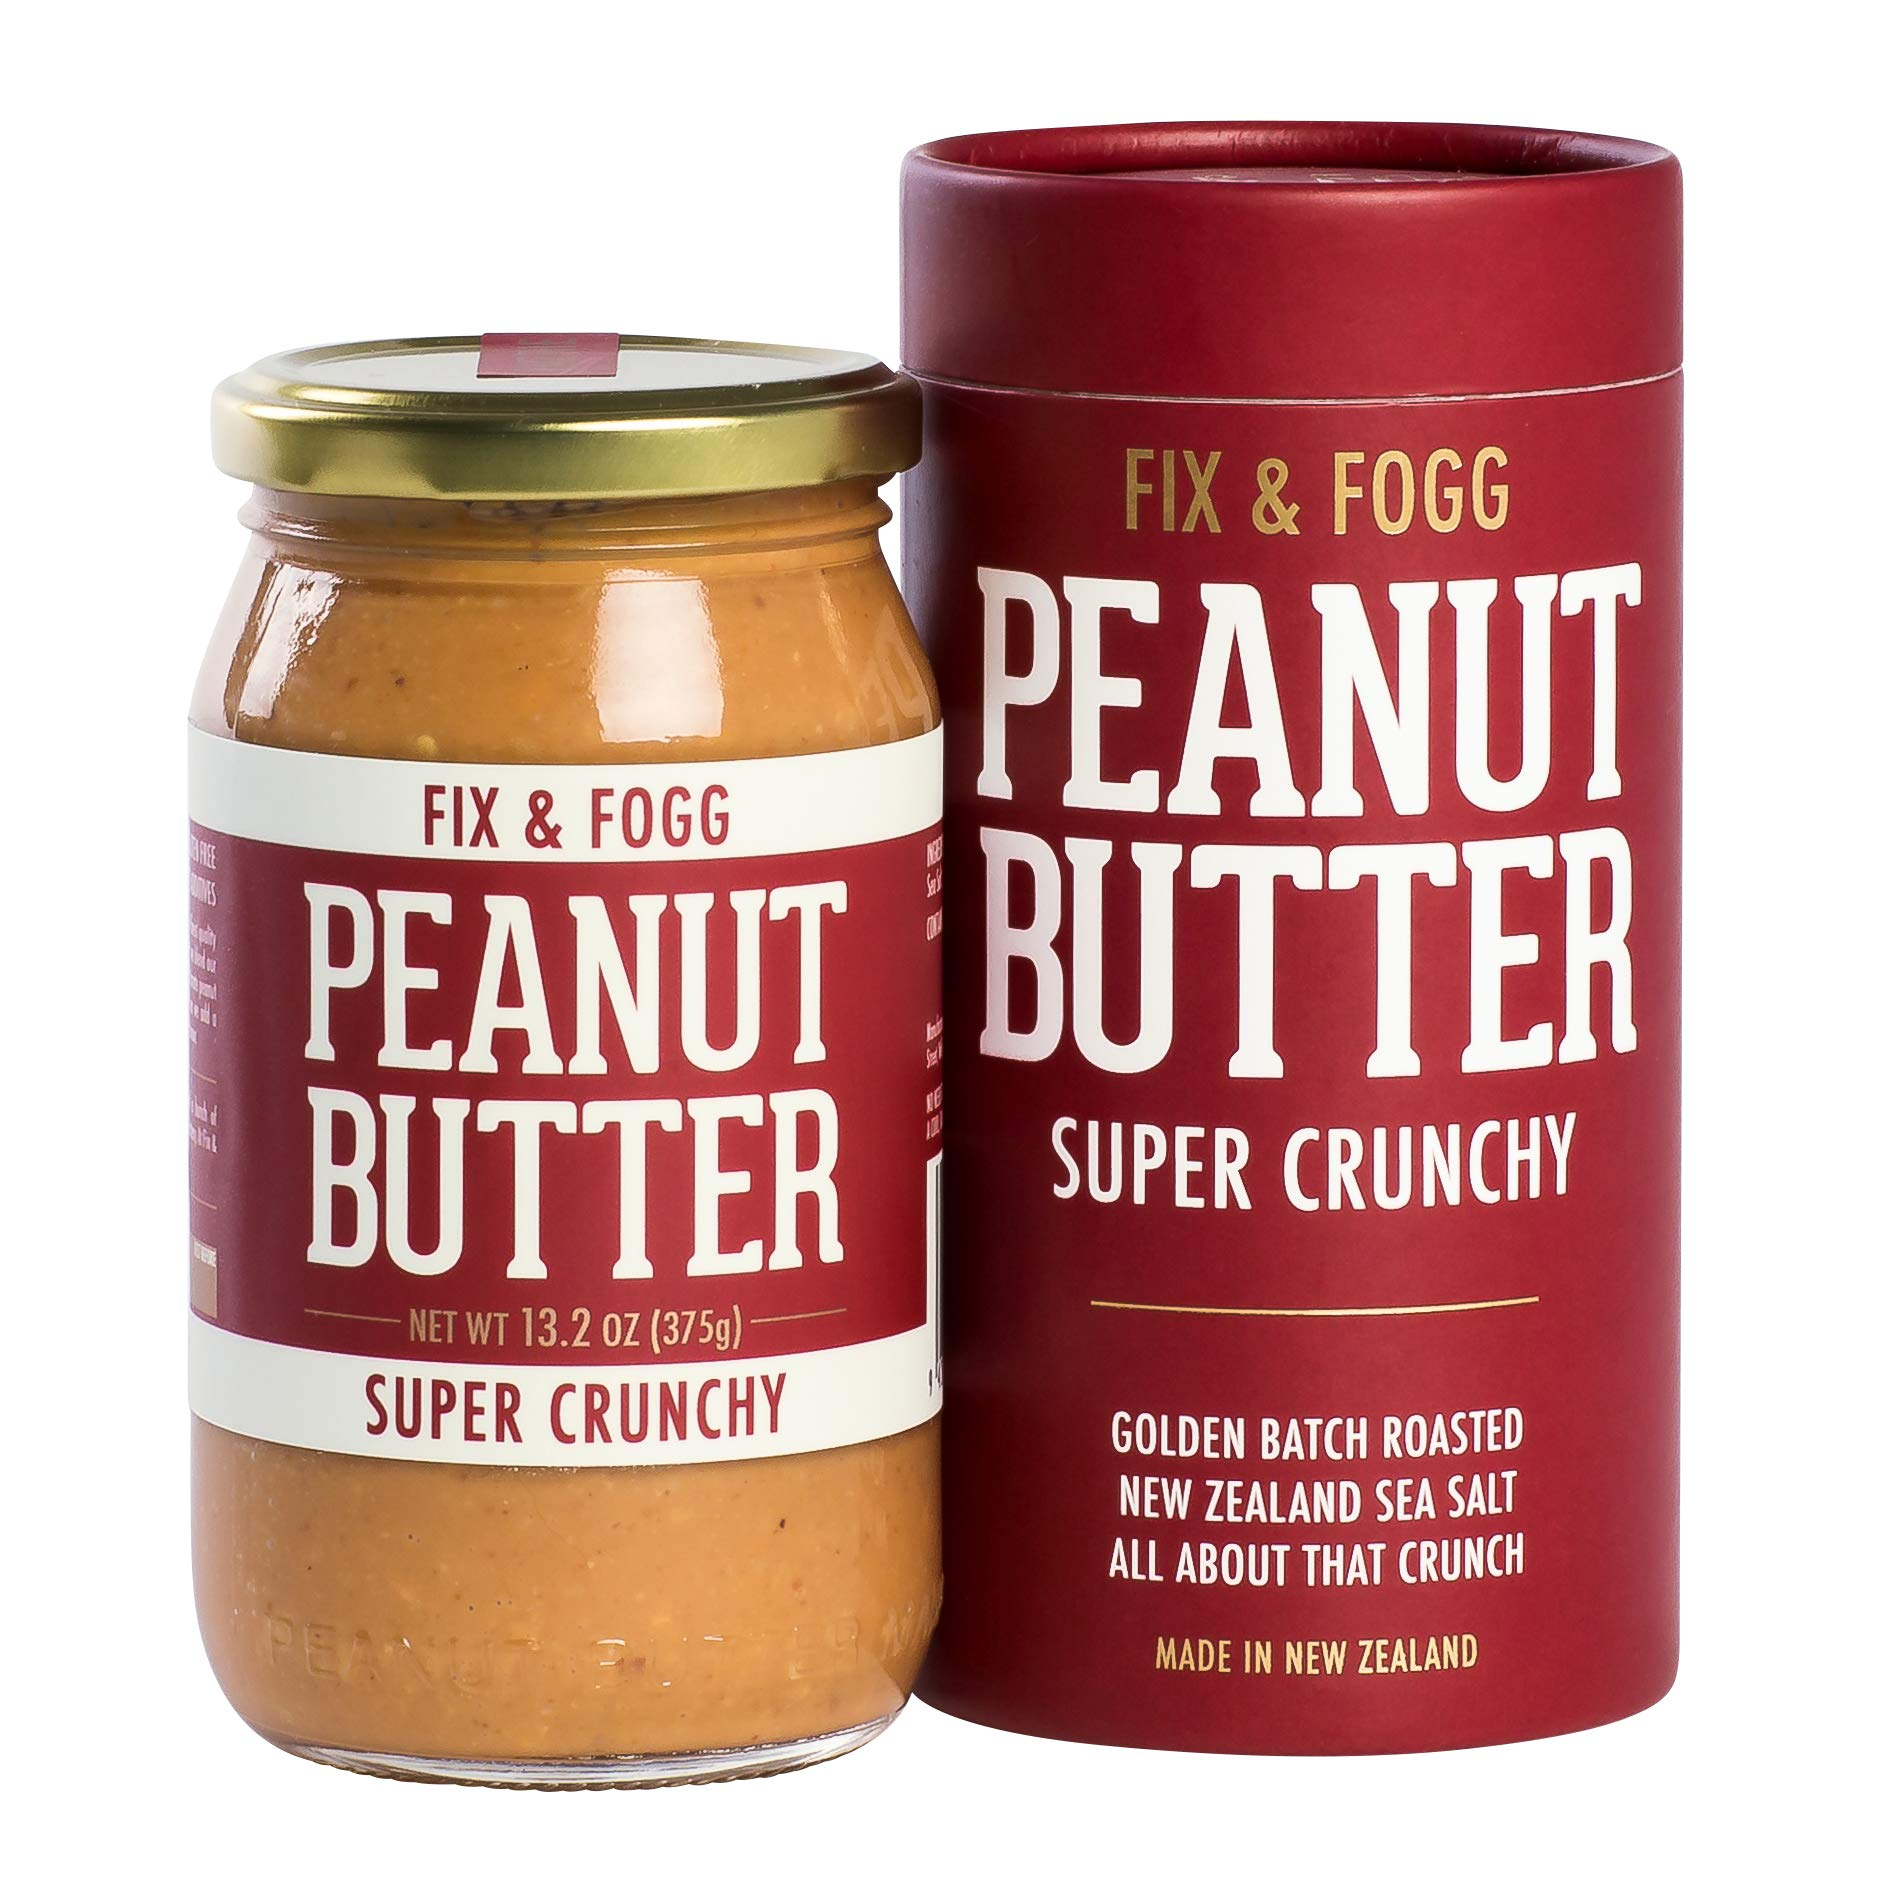 Fix & Fogg Super Crunchy Peanut Butter (13.2 oz) All Natural, Handmade, Vegan, Extra Chunky, Golden Roasted With Glass Jar and Beautifully Designed Cardboard Gift Canister.